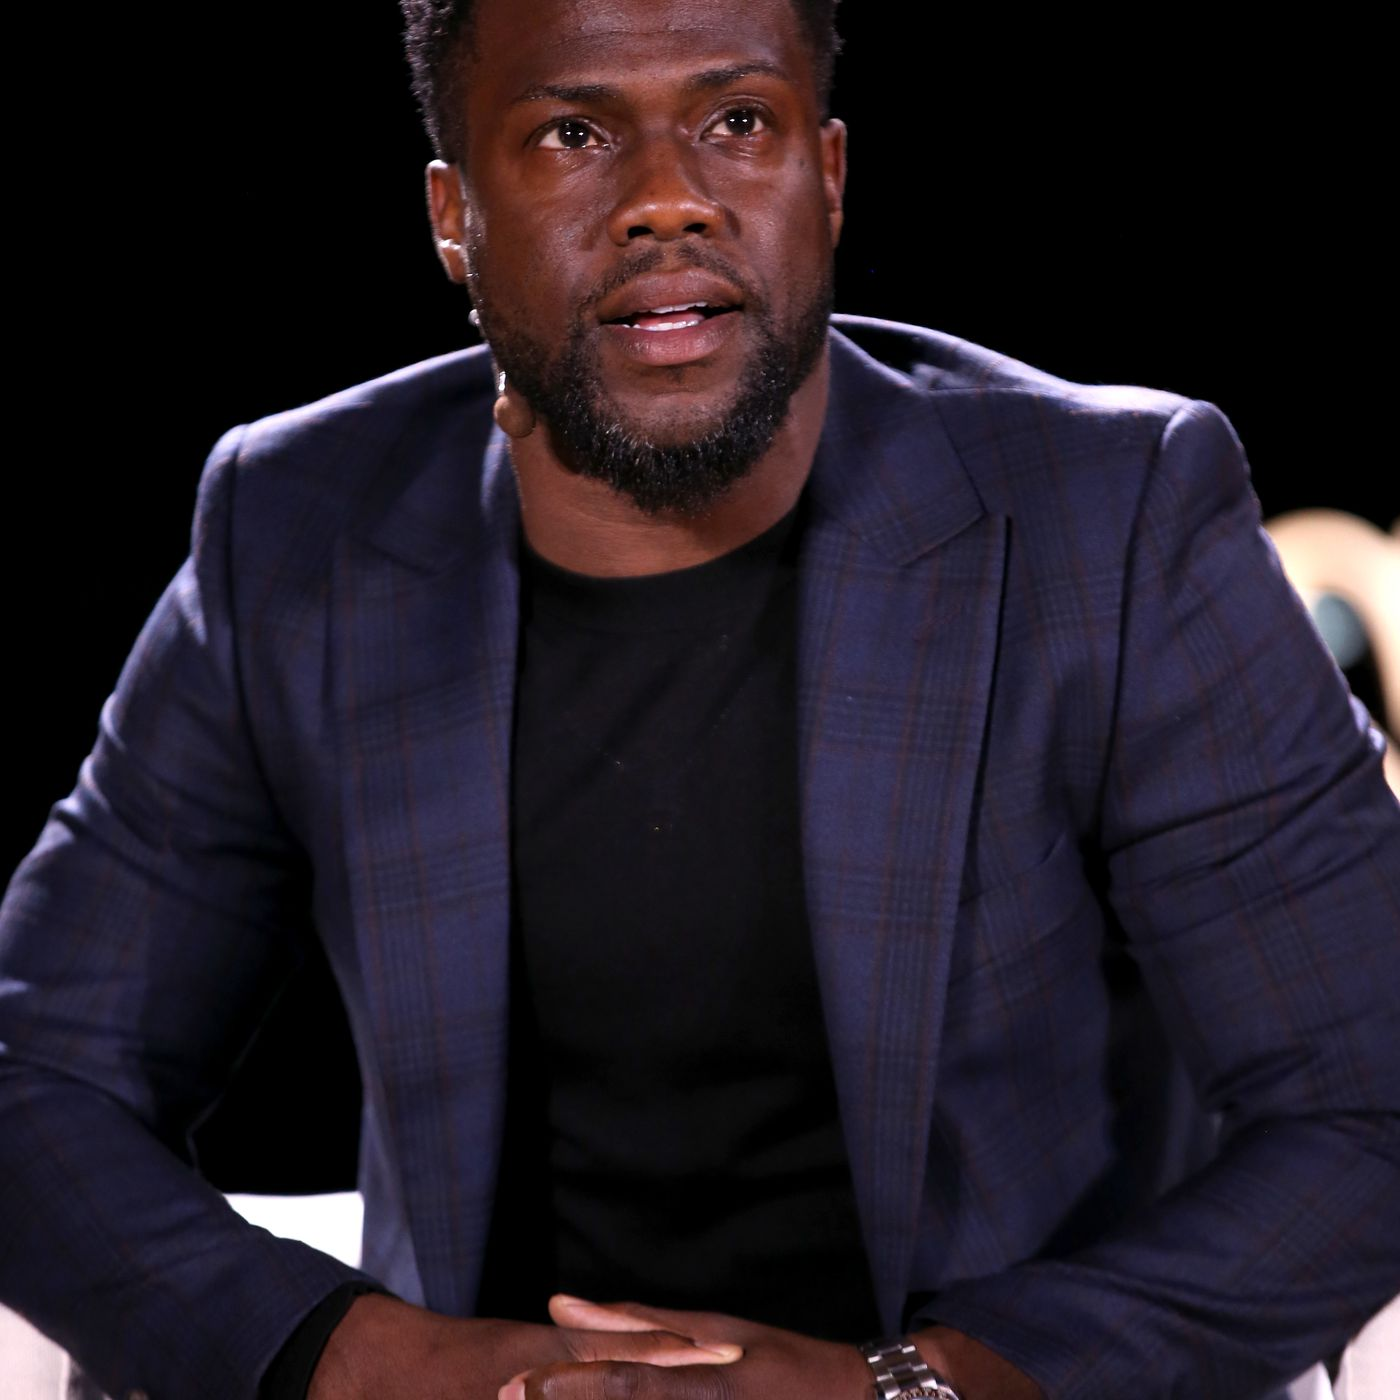 8f89971f676f Kevin Hart s Oscars backlash and the myth of the internet mob - Vox